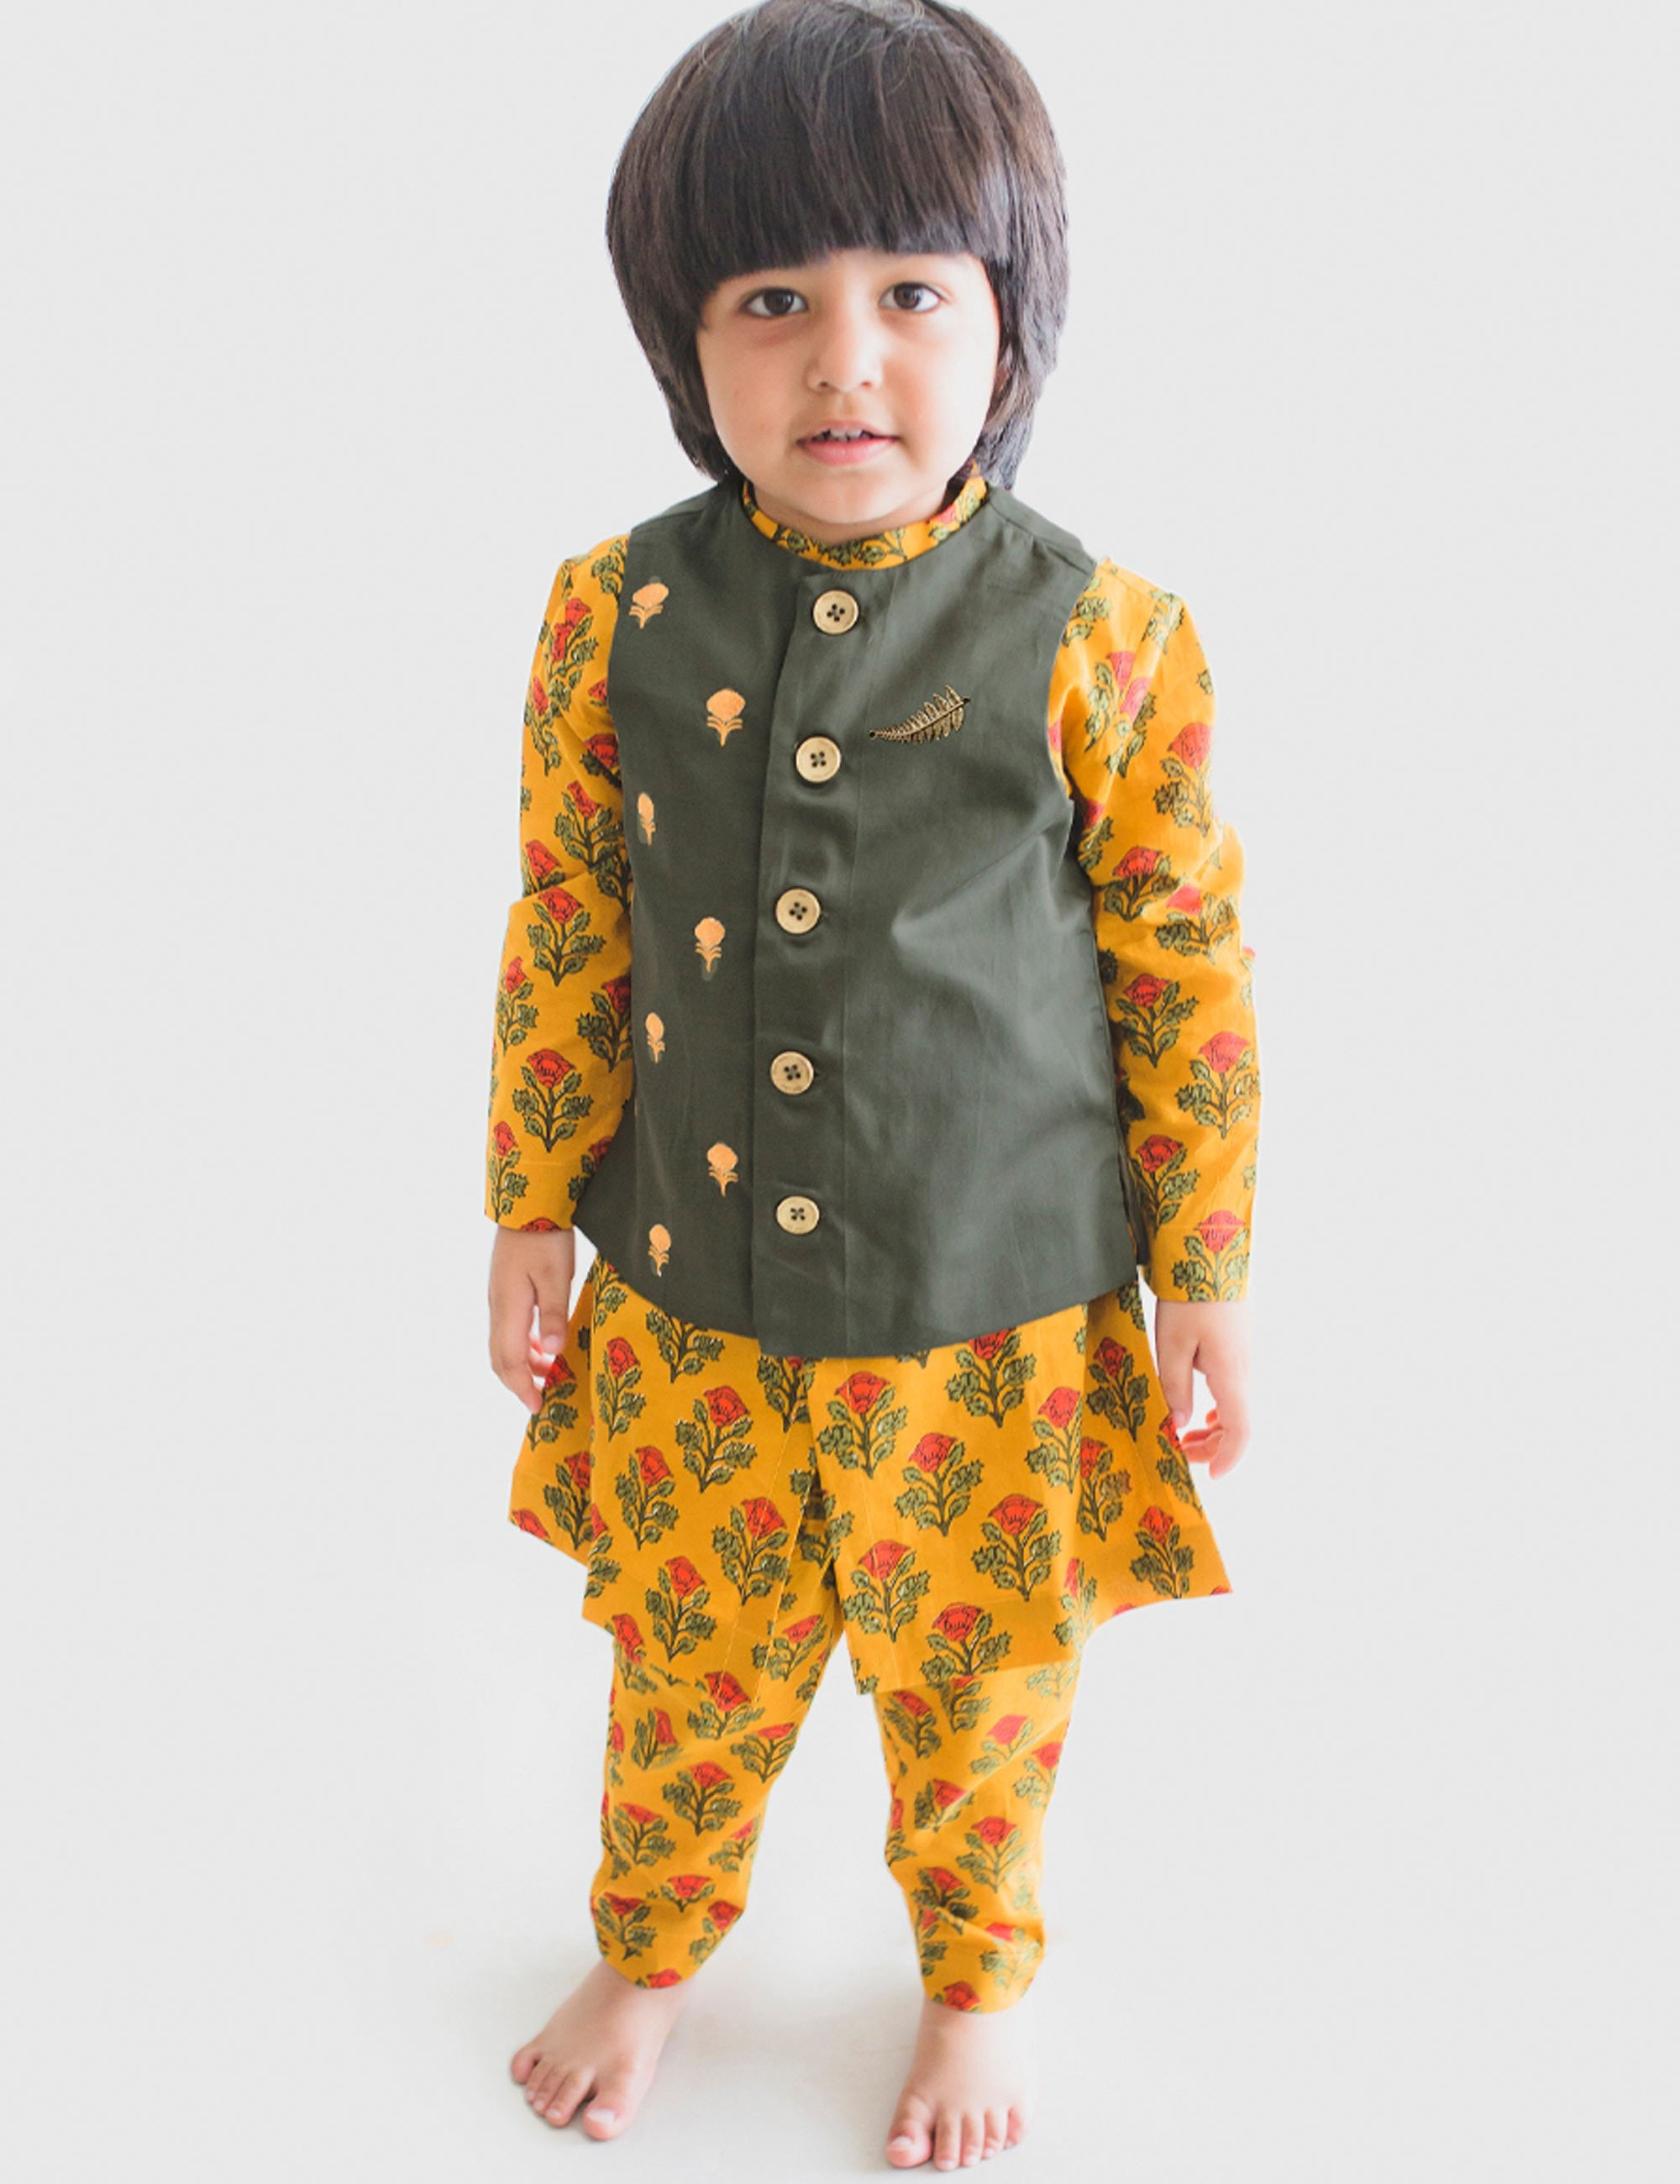 Cotton Boy Bundi Kurta Set Mustard Floral 3 Pc